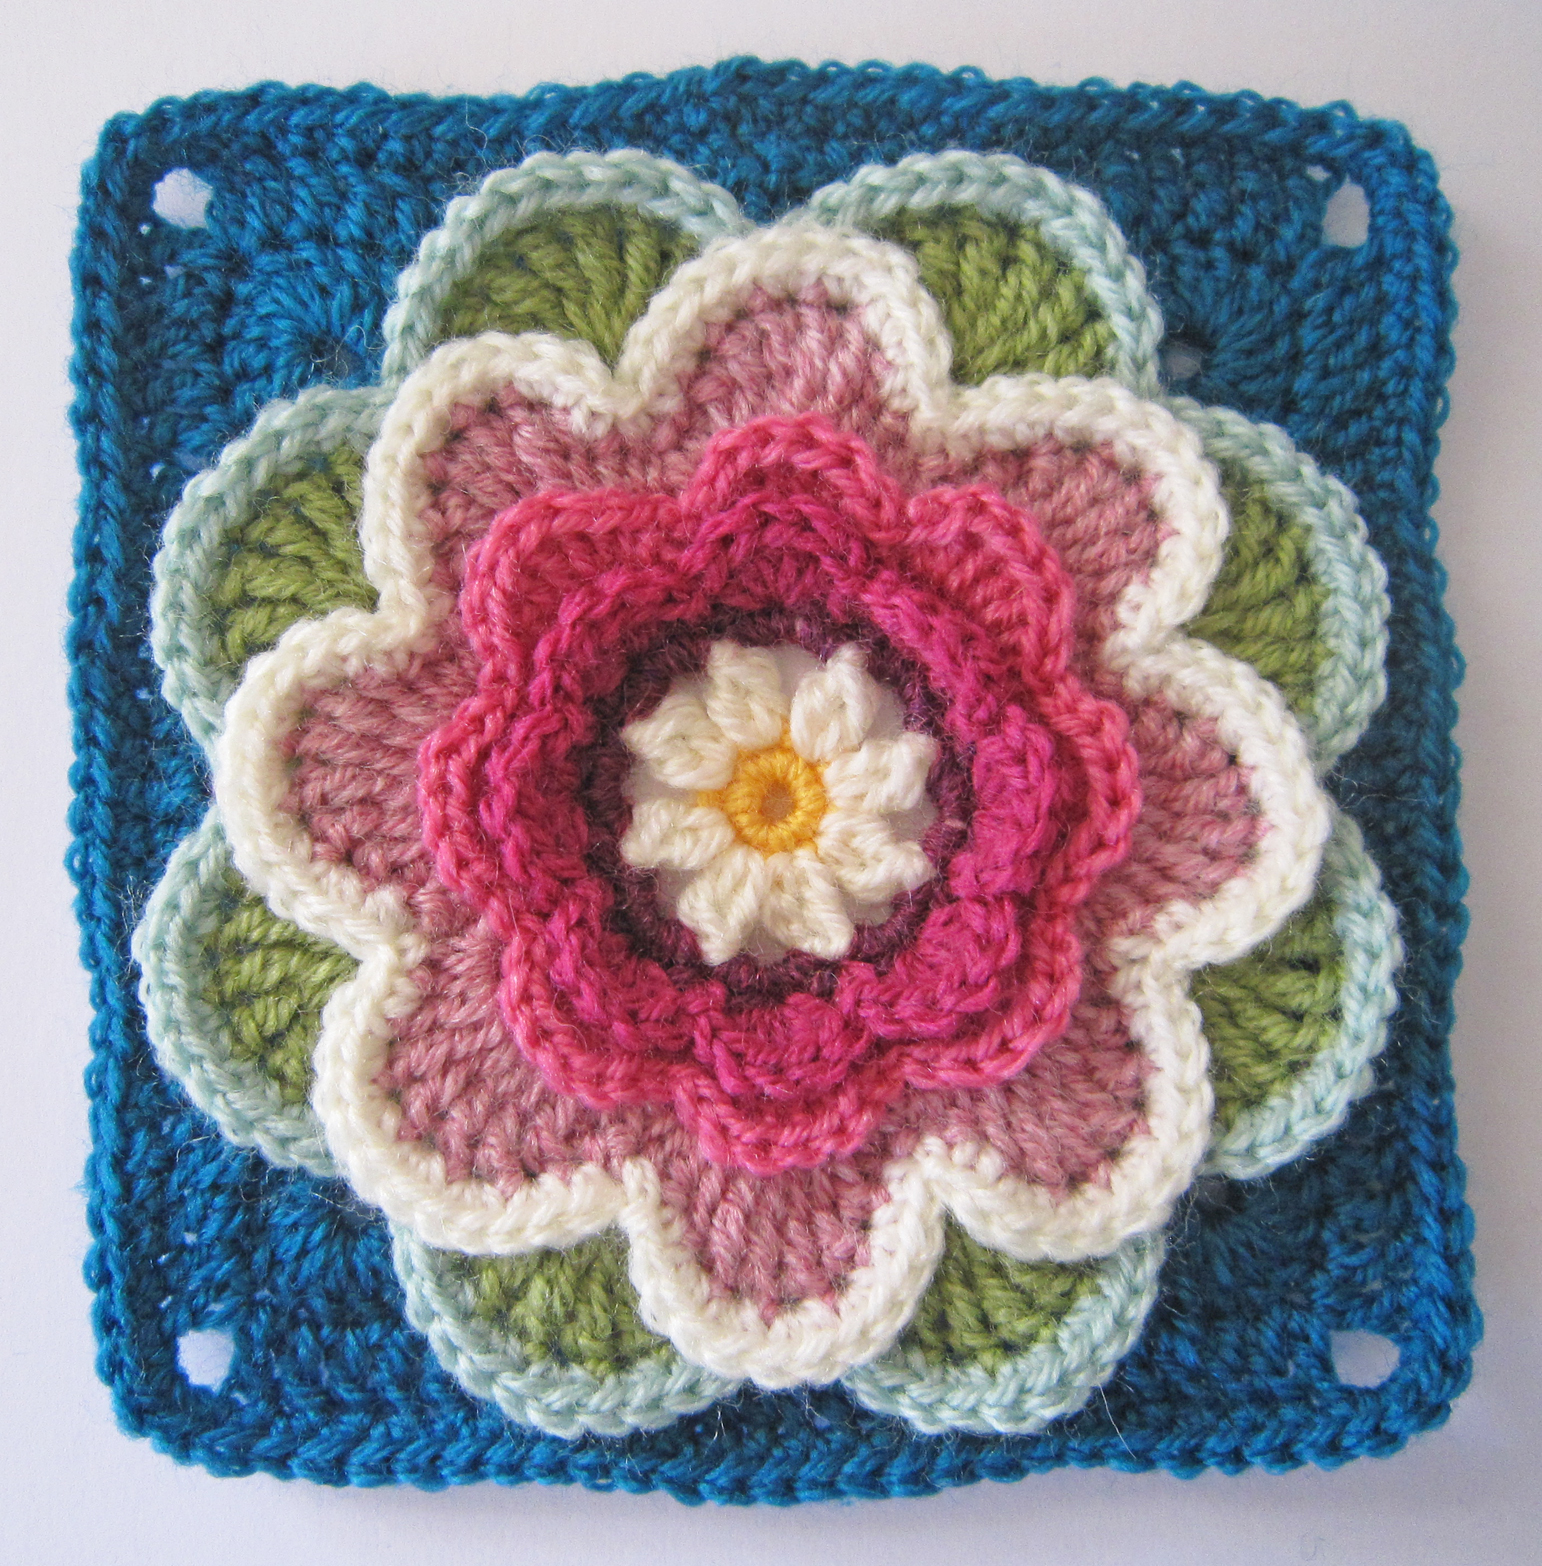 Knit Crochet Design Lily Pond Cal Block Five